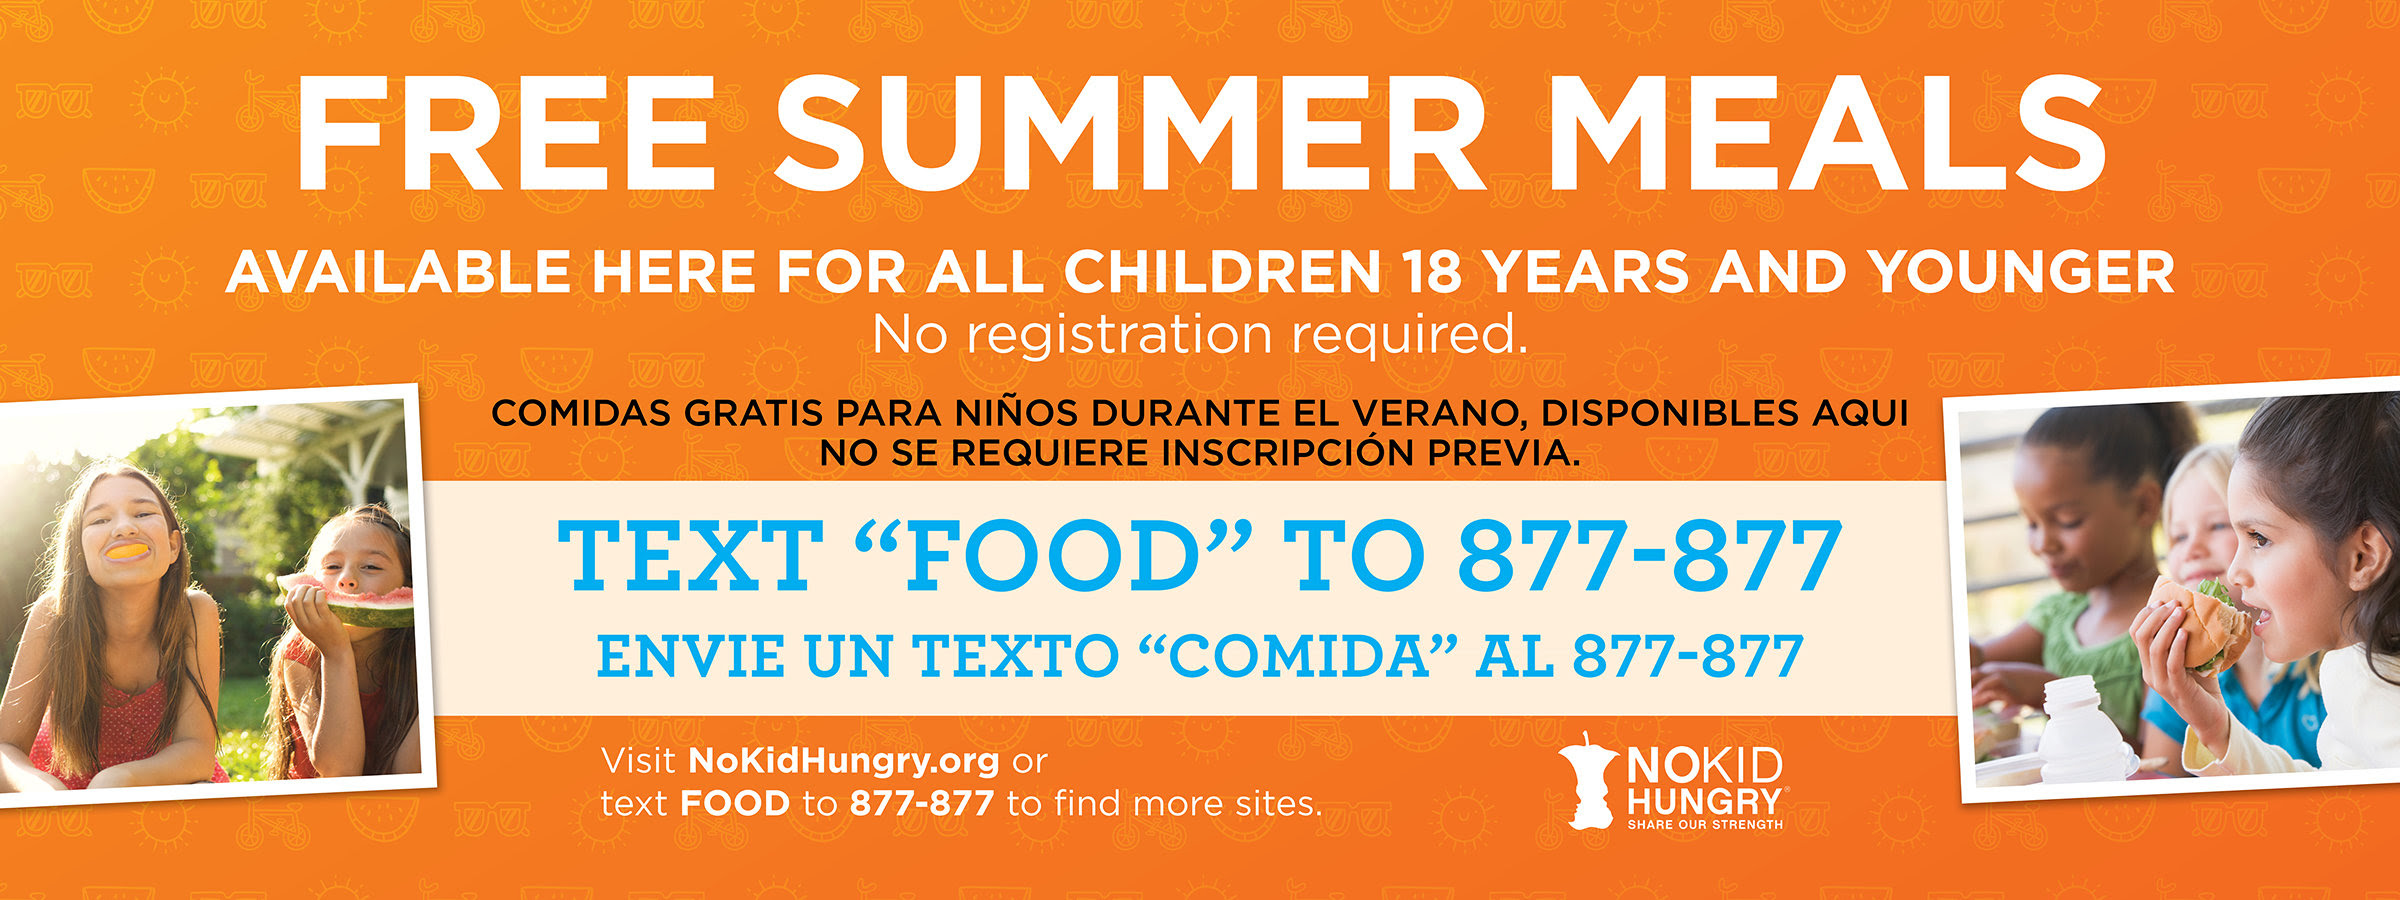 "Free Summer Meals - Text ""Food"" to 877-877"